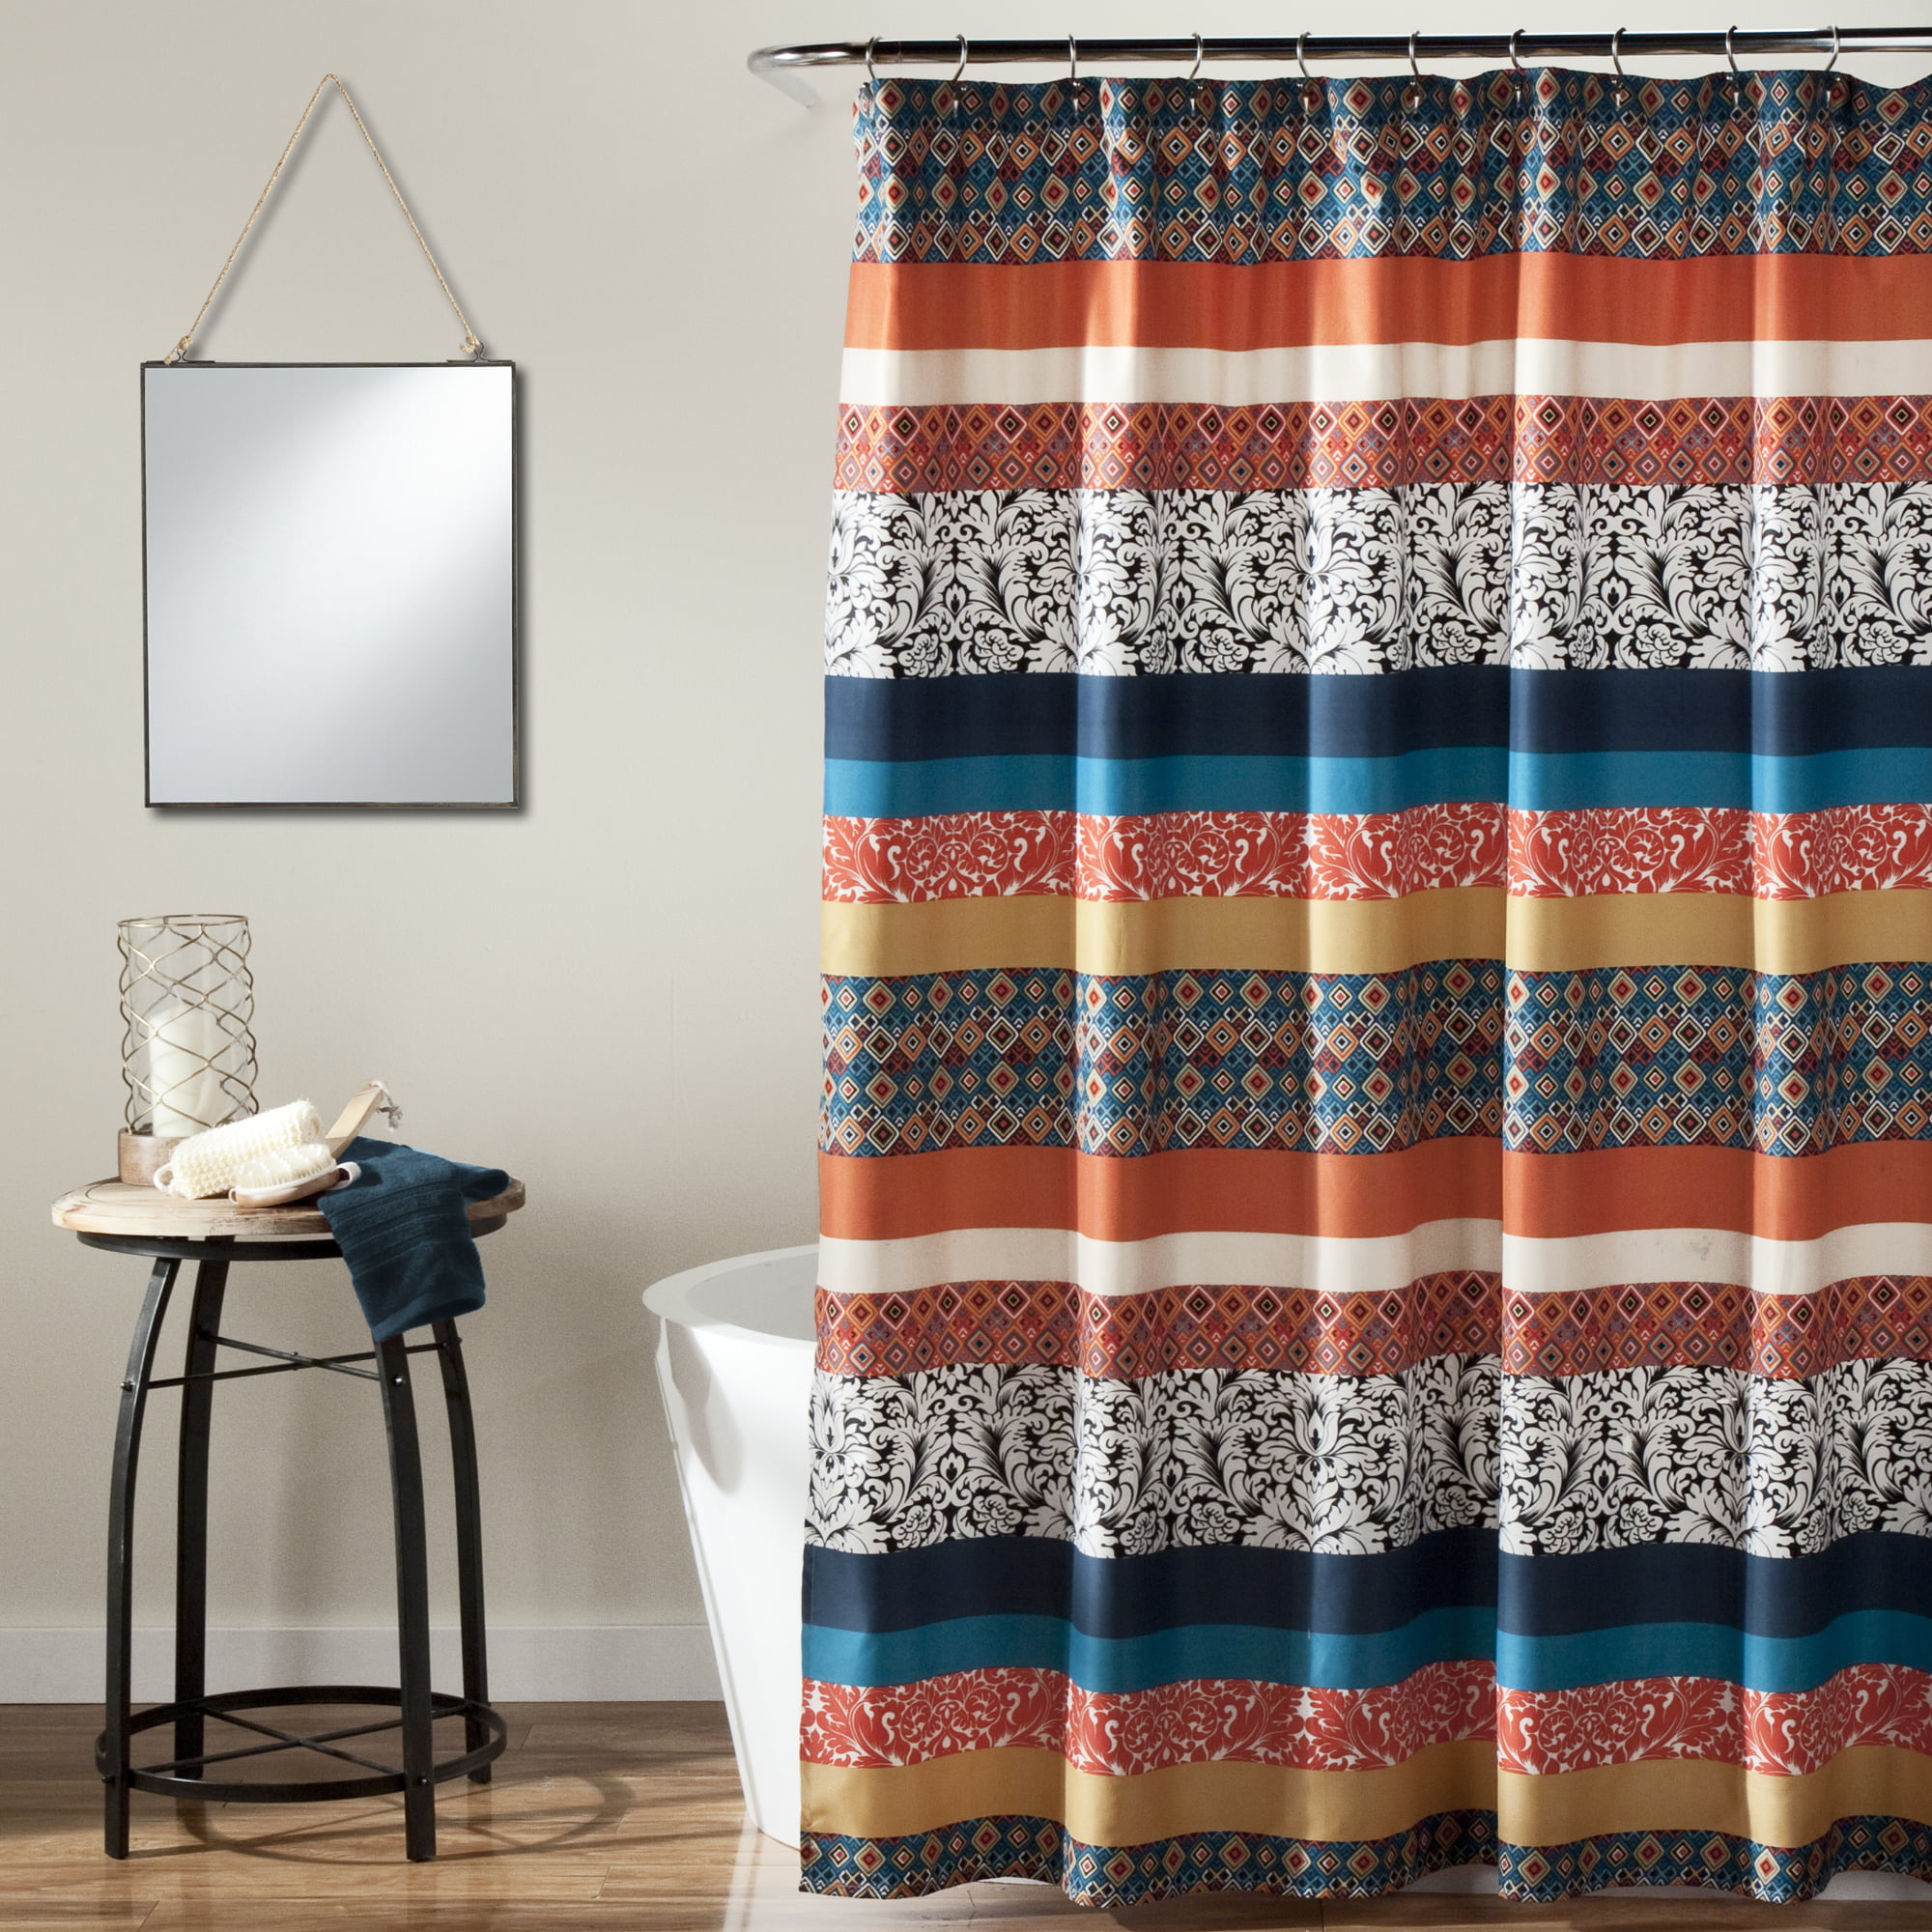 Lush Decor Boho Stripe Polyester Shower Curtain 72x72 Turquoise Orange Single Walmart Com Walmart Com